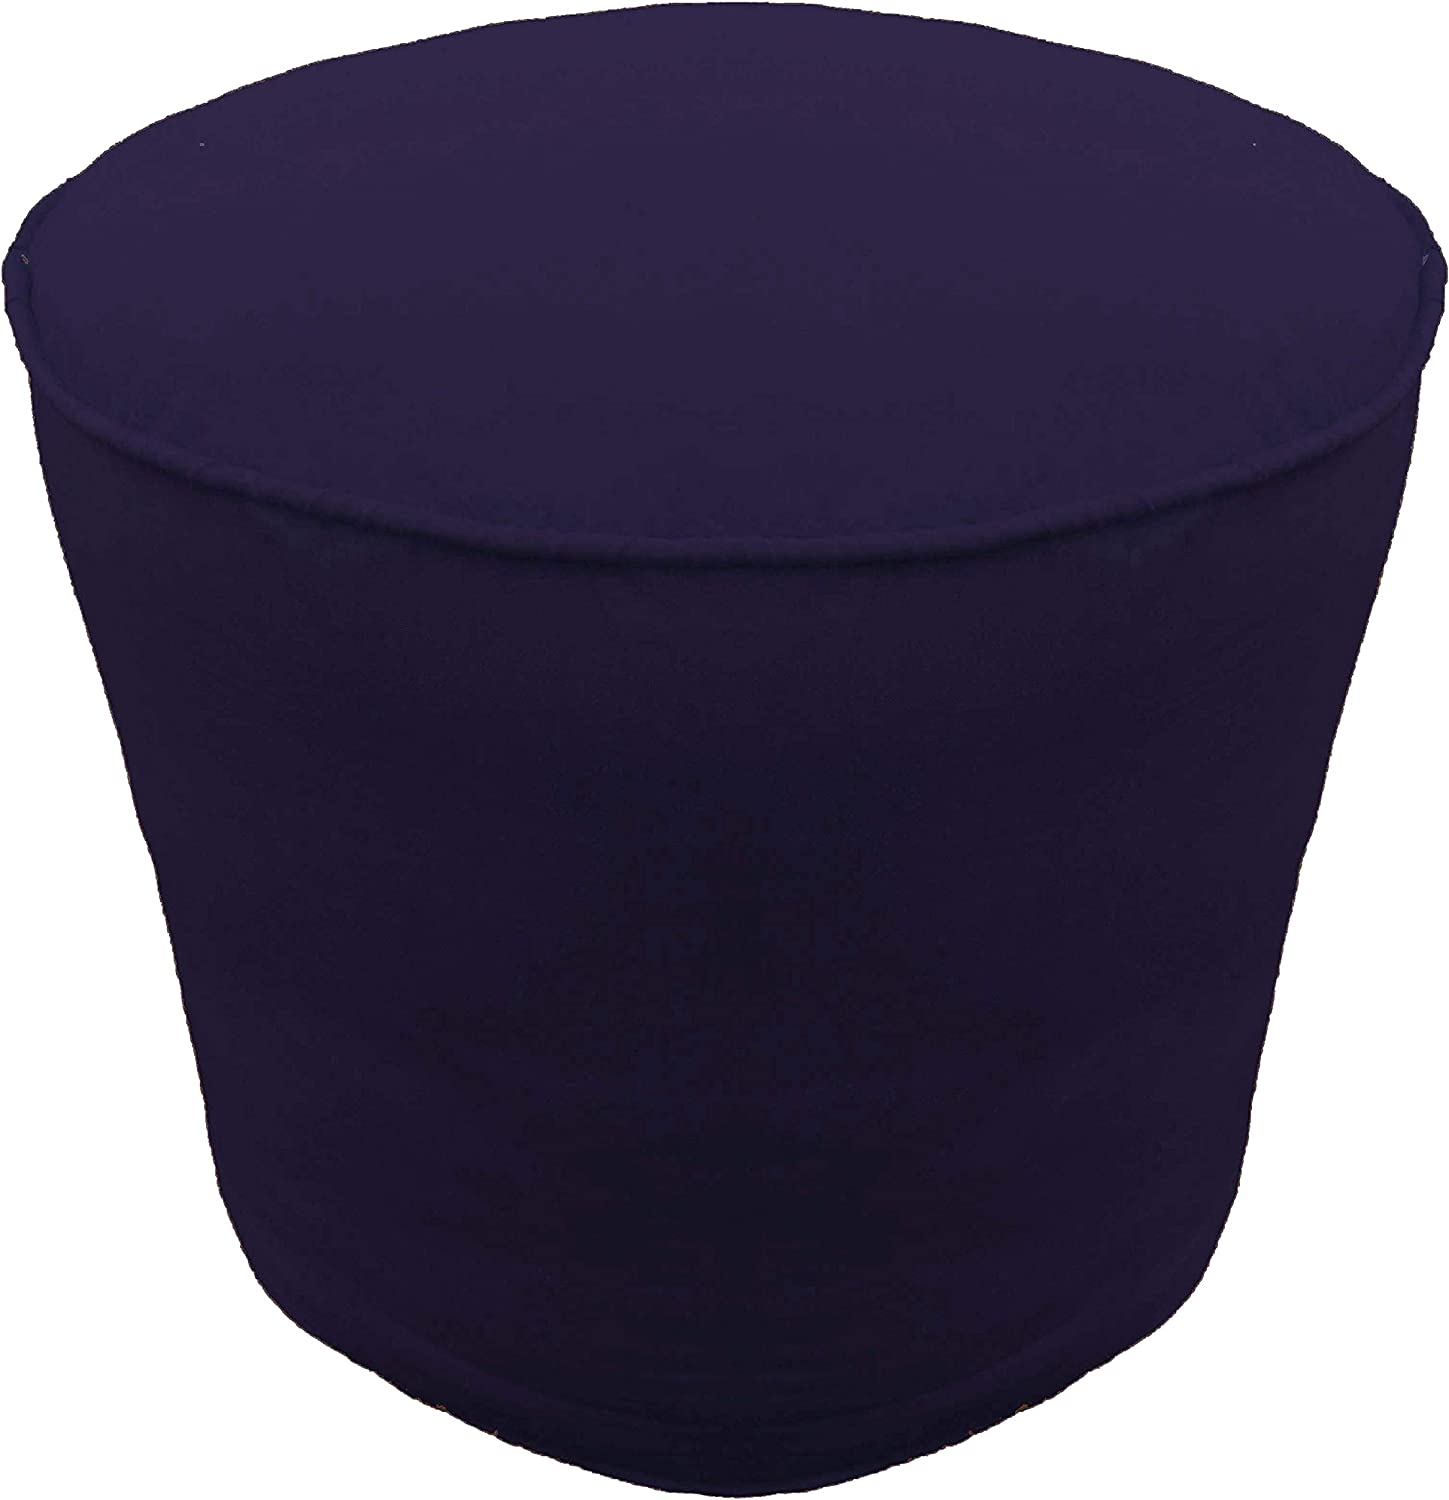 Footstool Round Max 86% OFF Pouf Cover with OFFer Ottoman Cotton Navy Piping